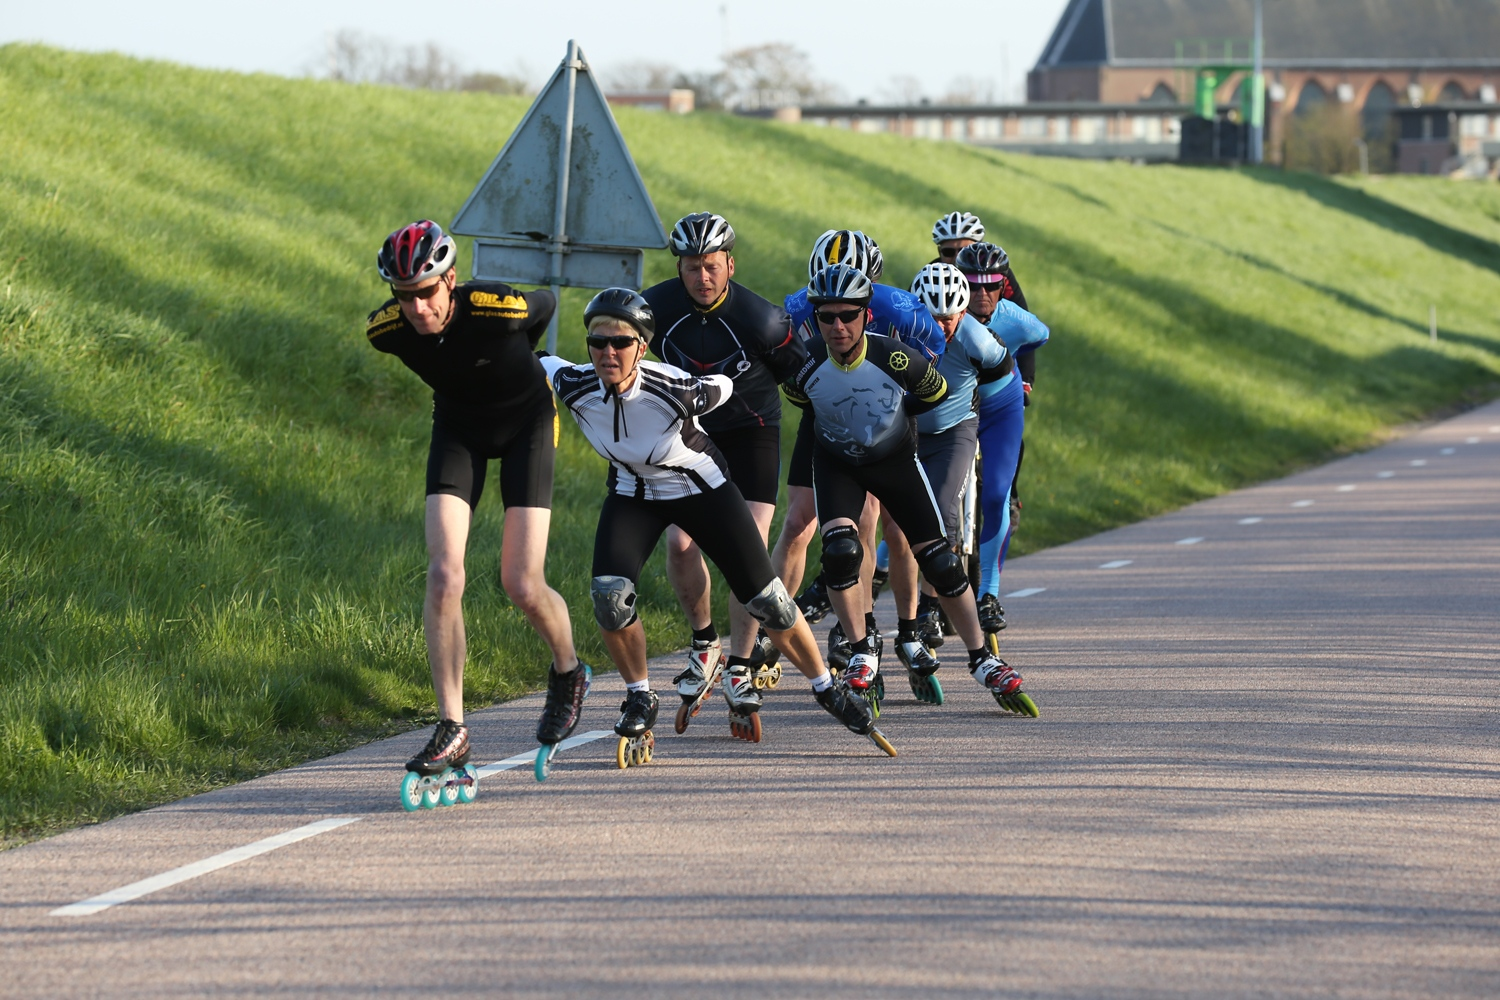 The flat terrain of the Netherlands makes it a suitable location to practice inline skating. The network of cycle paths makes it particularly attractive to skaters.